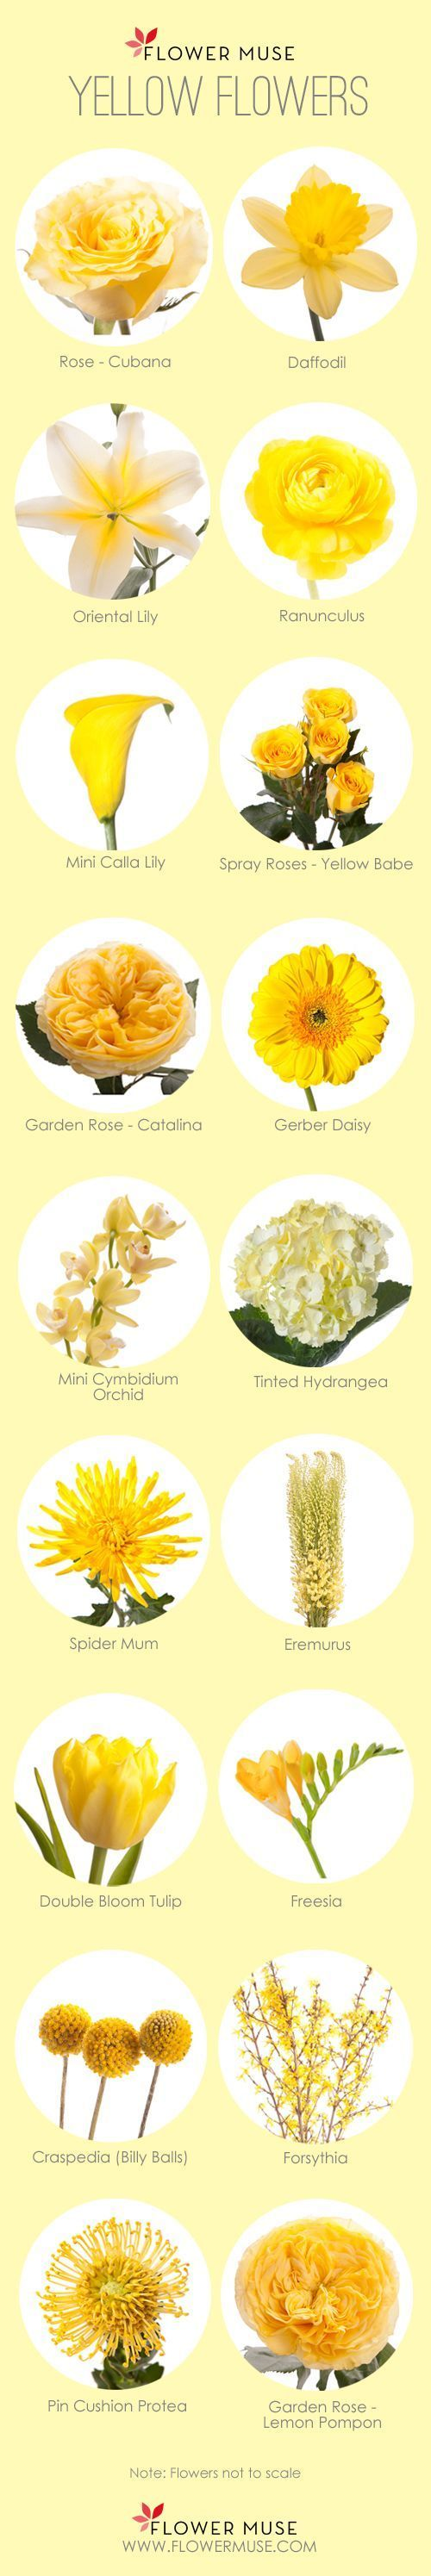 Our favorite yellow flowers member board bride bridal party we share our favorite yellow flowers from garden roses to tulips these blooms are perfect for your wedding or event mightylinksfo